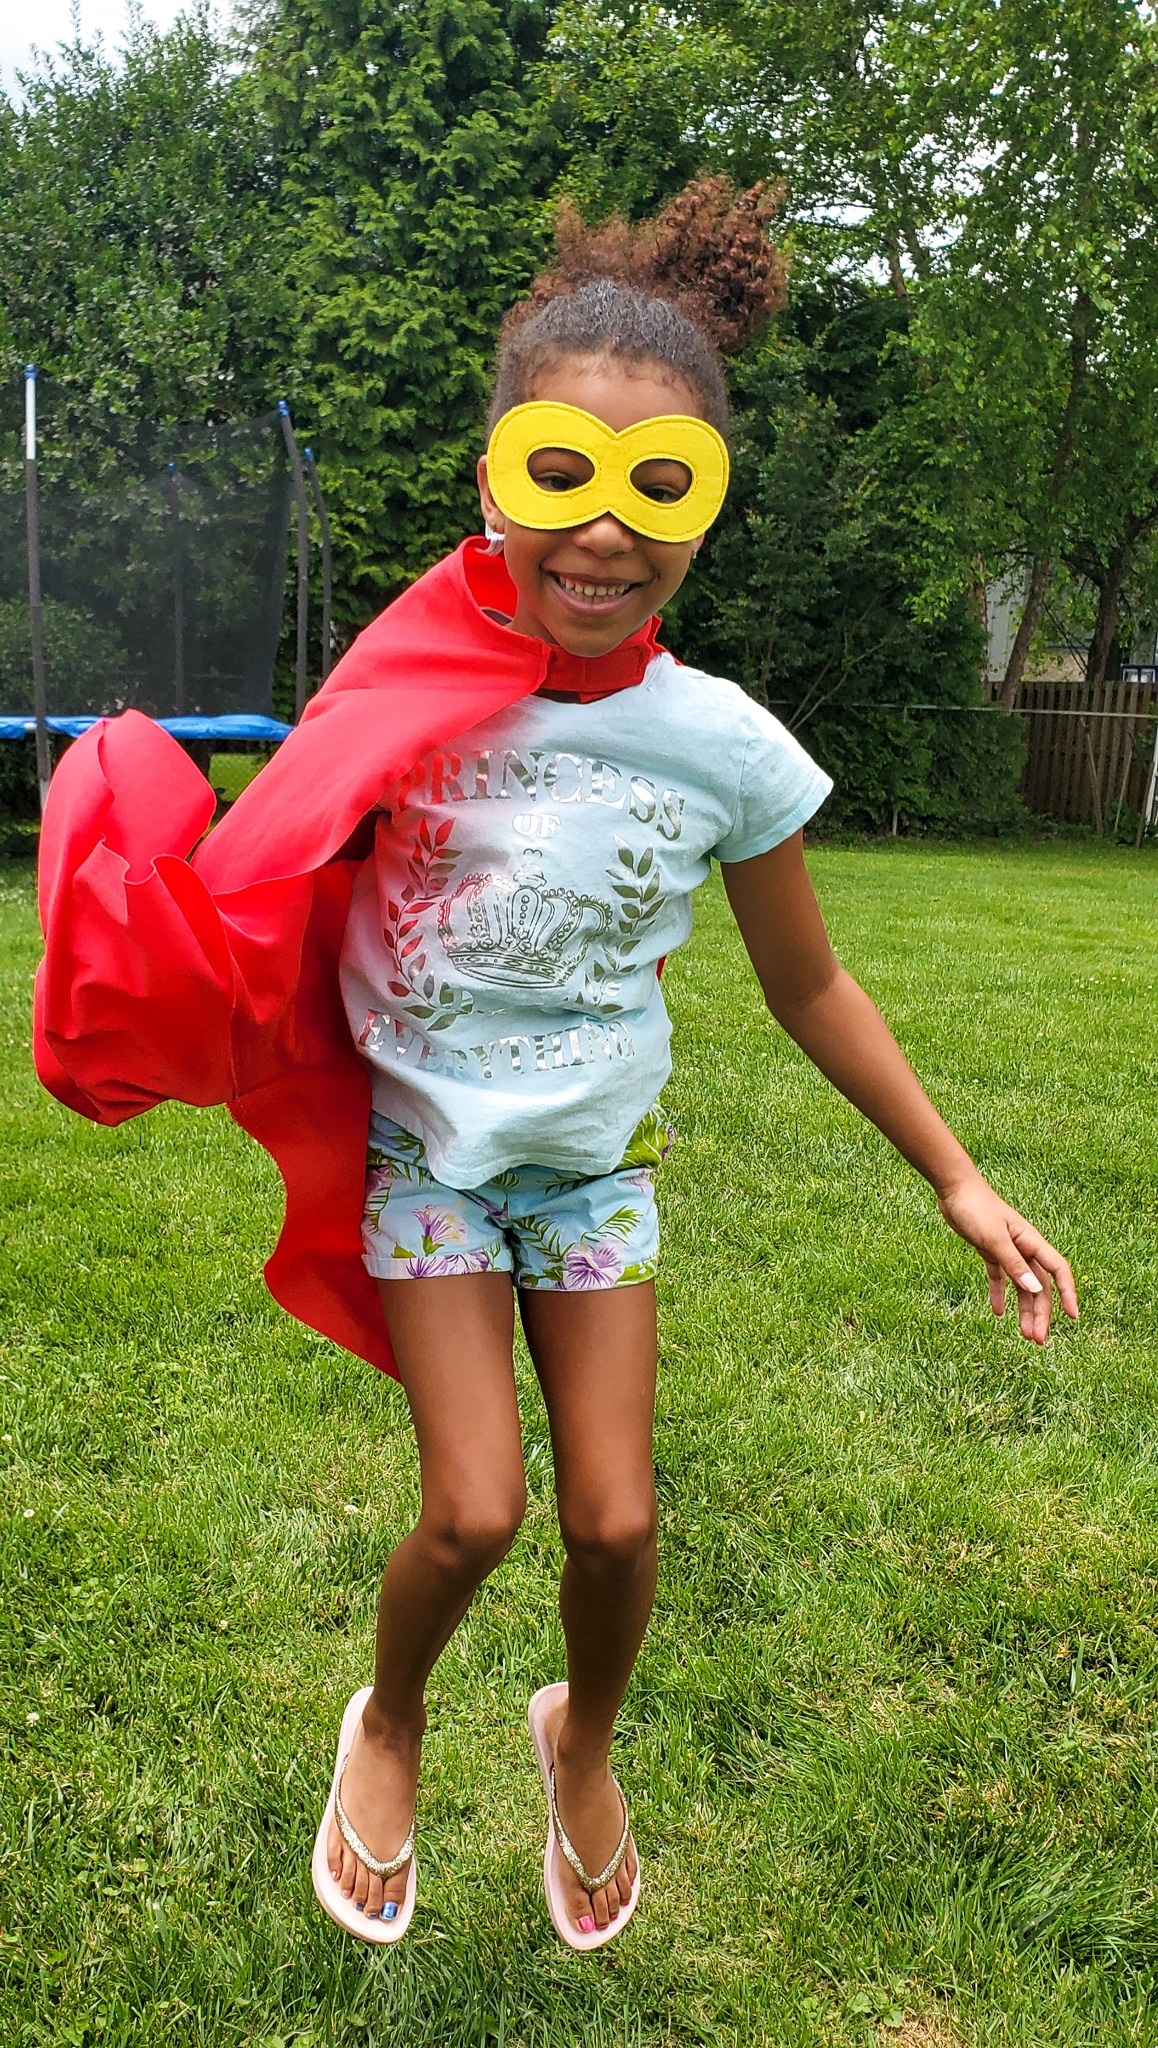 Virtual Super Hero Training Jump. Join us as we adventure through 8 weeks of Virtual Camp Warner Bros. Each week will feature a new fun family friendly activity and a Warner Bros. Show or Movie. This week featured a Virtual Super Hero Training.